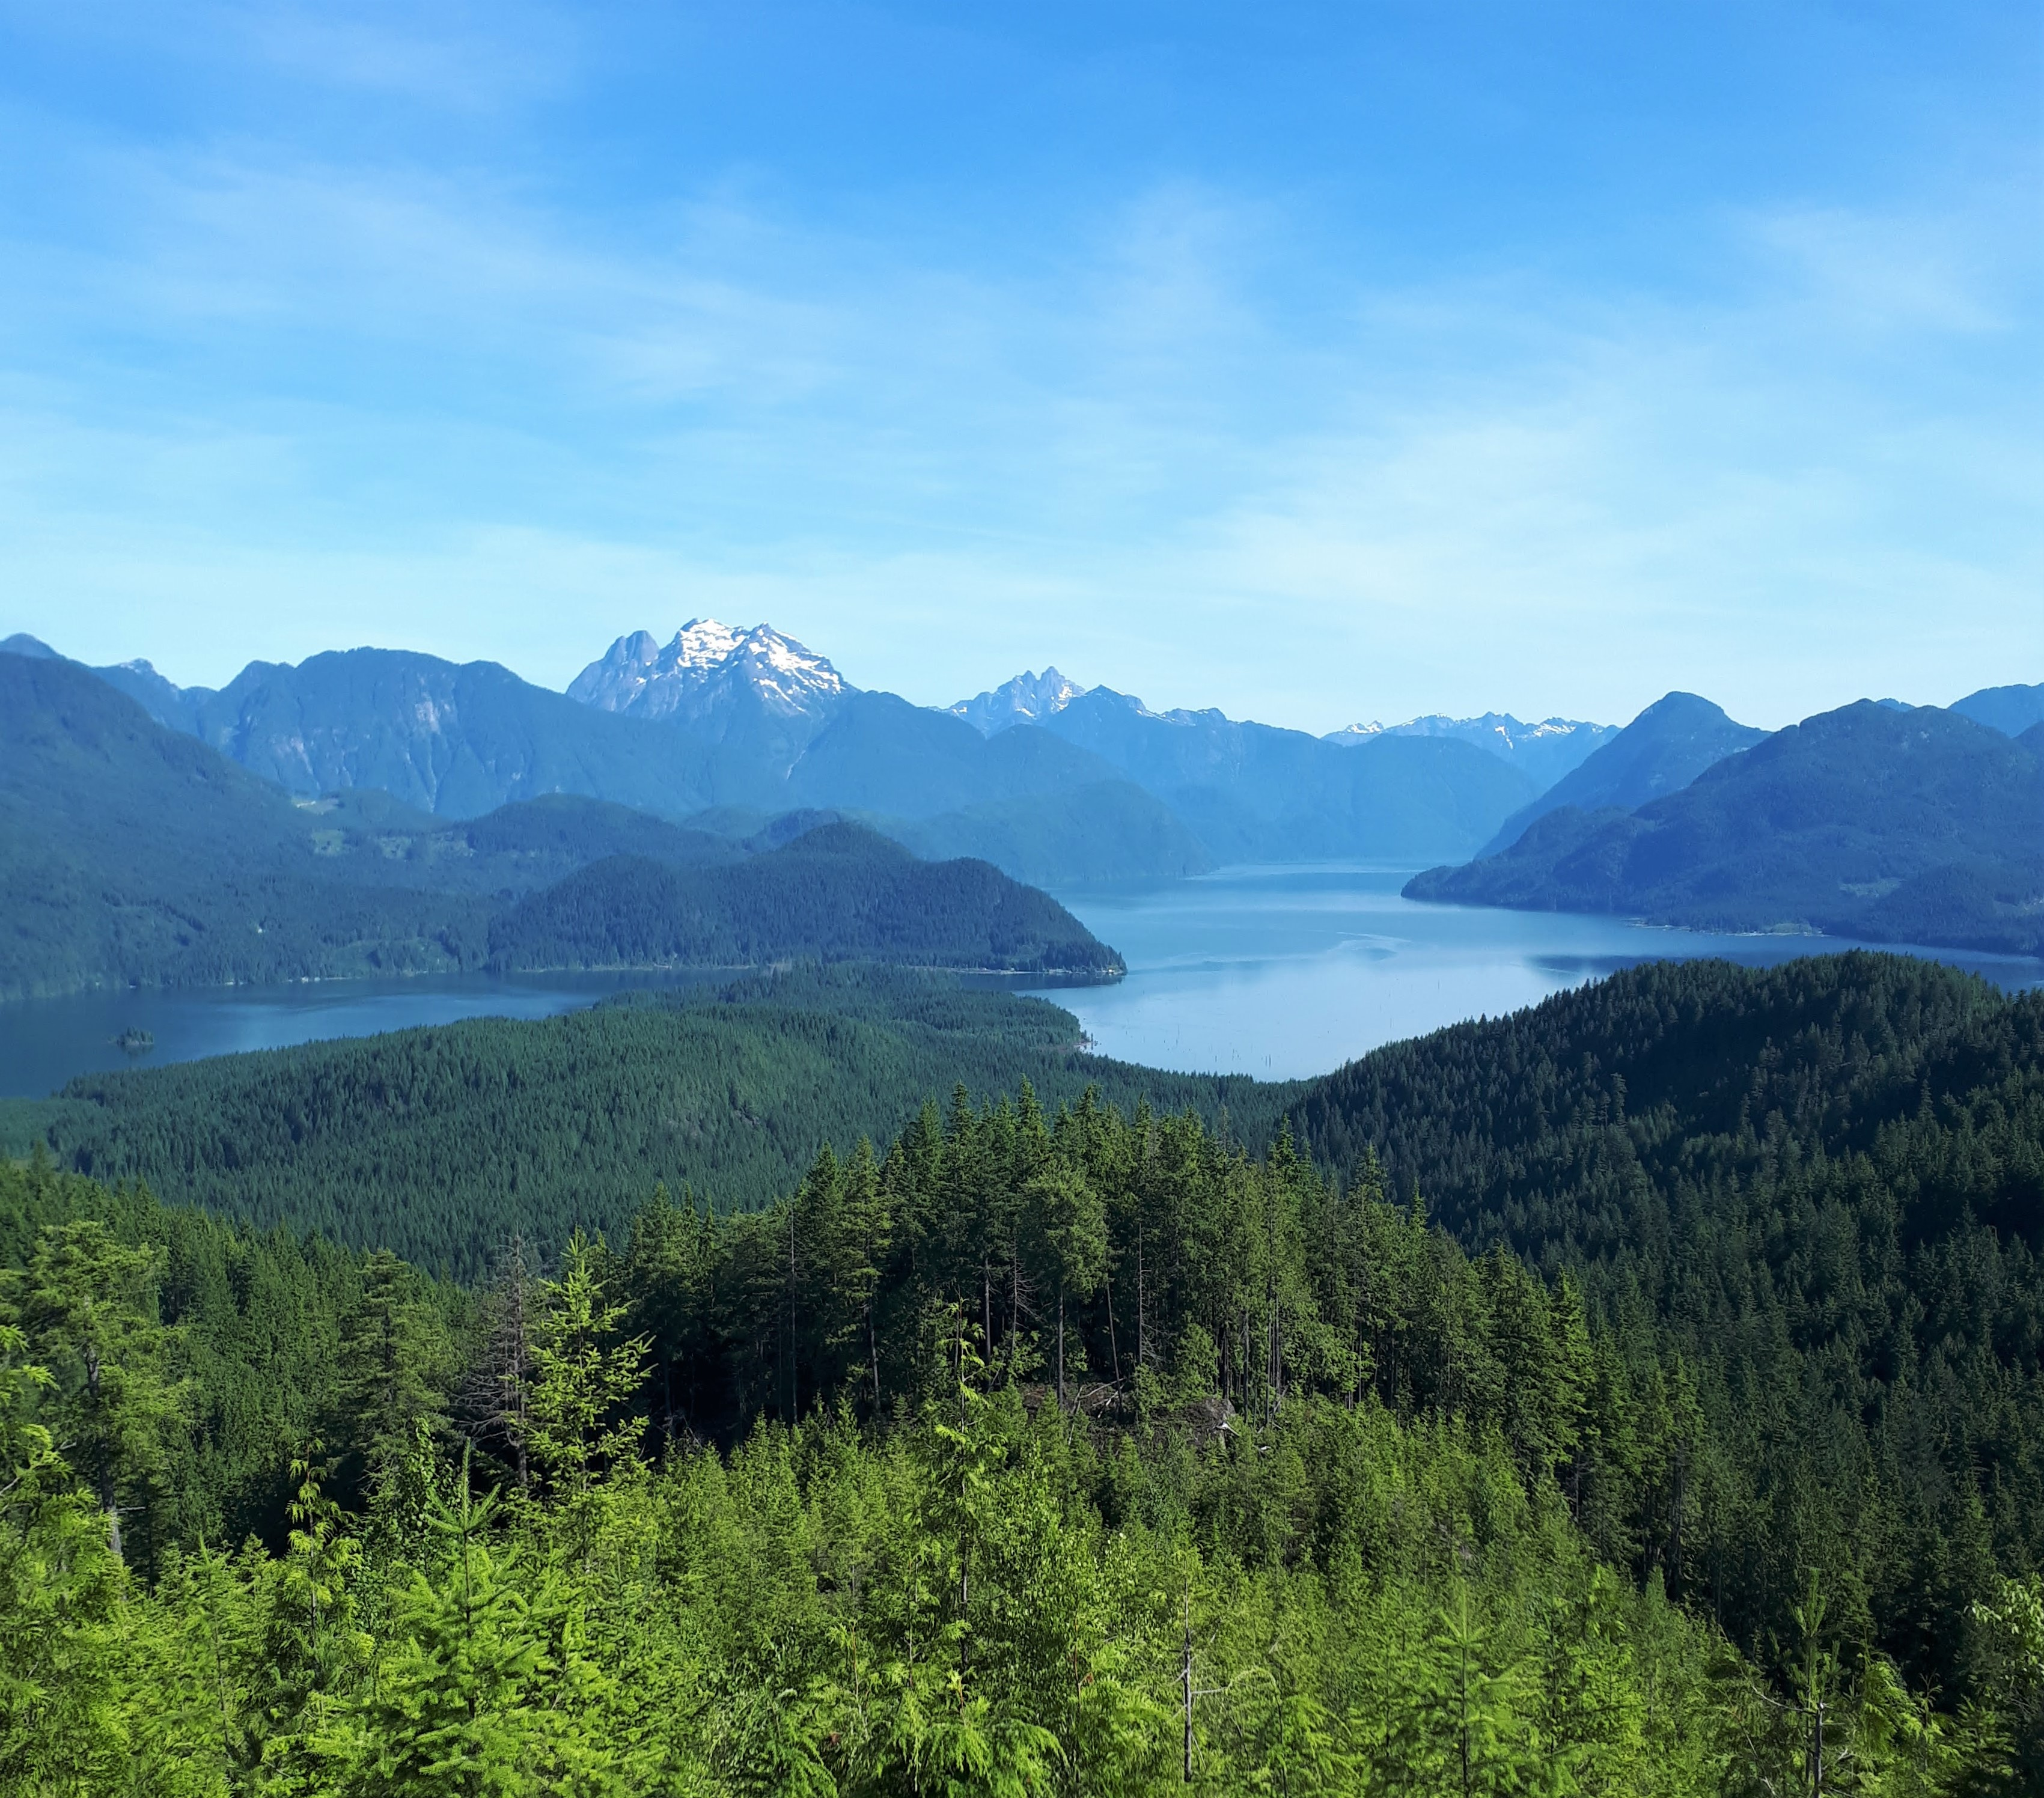 A view of the mountain range, lakes, and forests in Maple Ridge, from one of the best hiking near Vancouver, BC